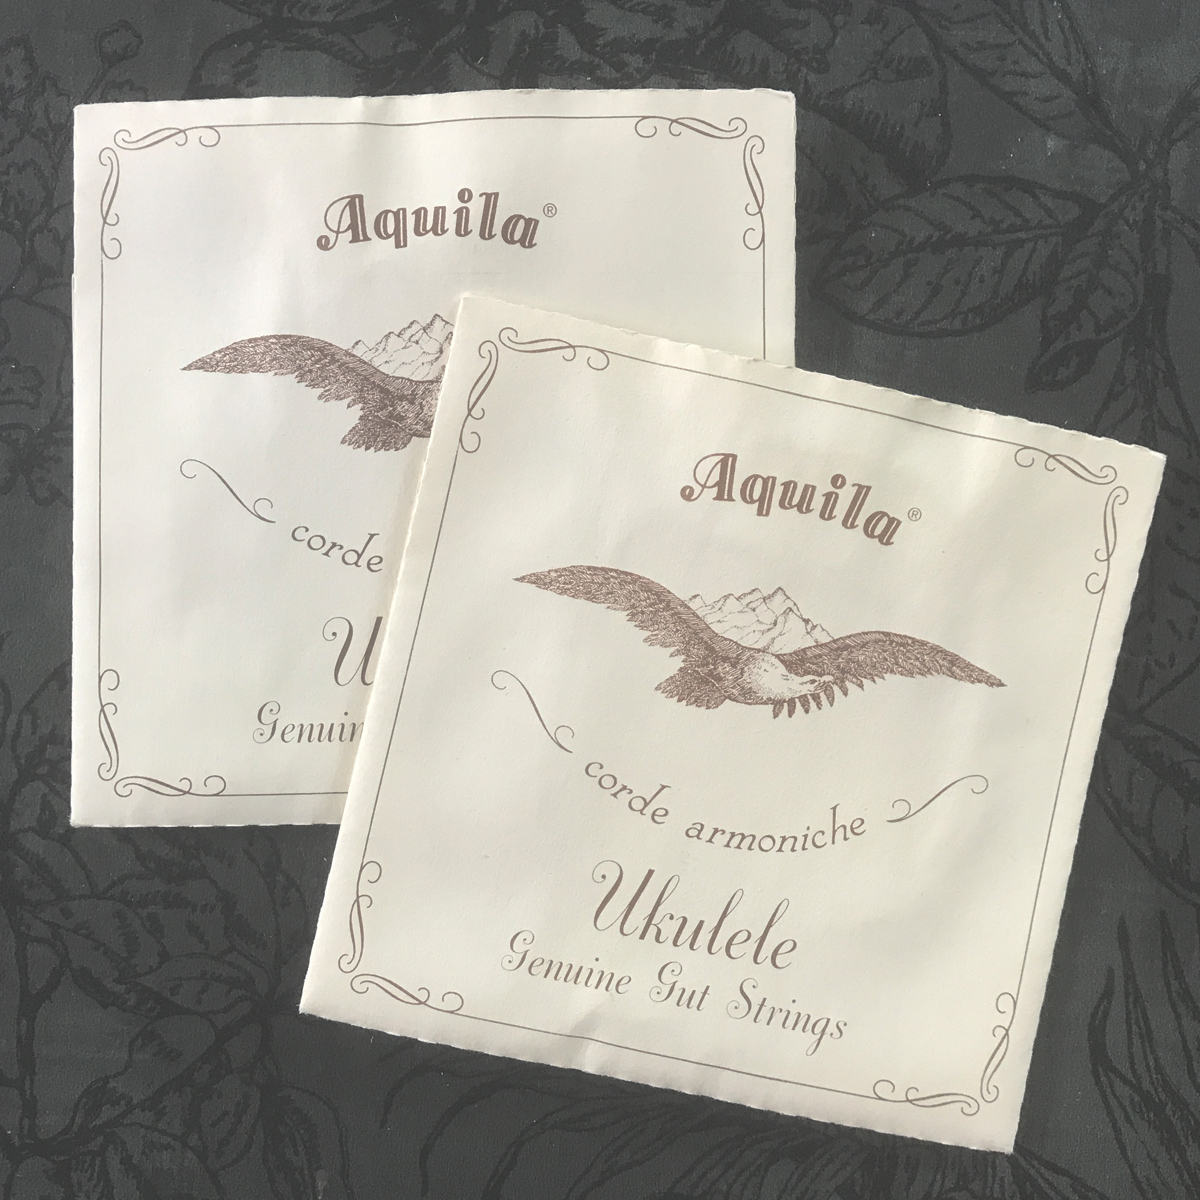 Aquila Genuine Gut Strings - sopraan